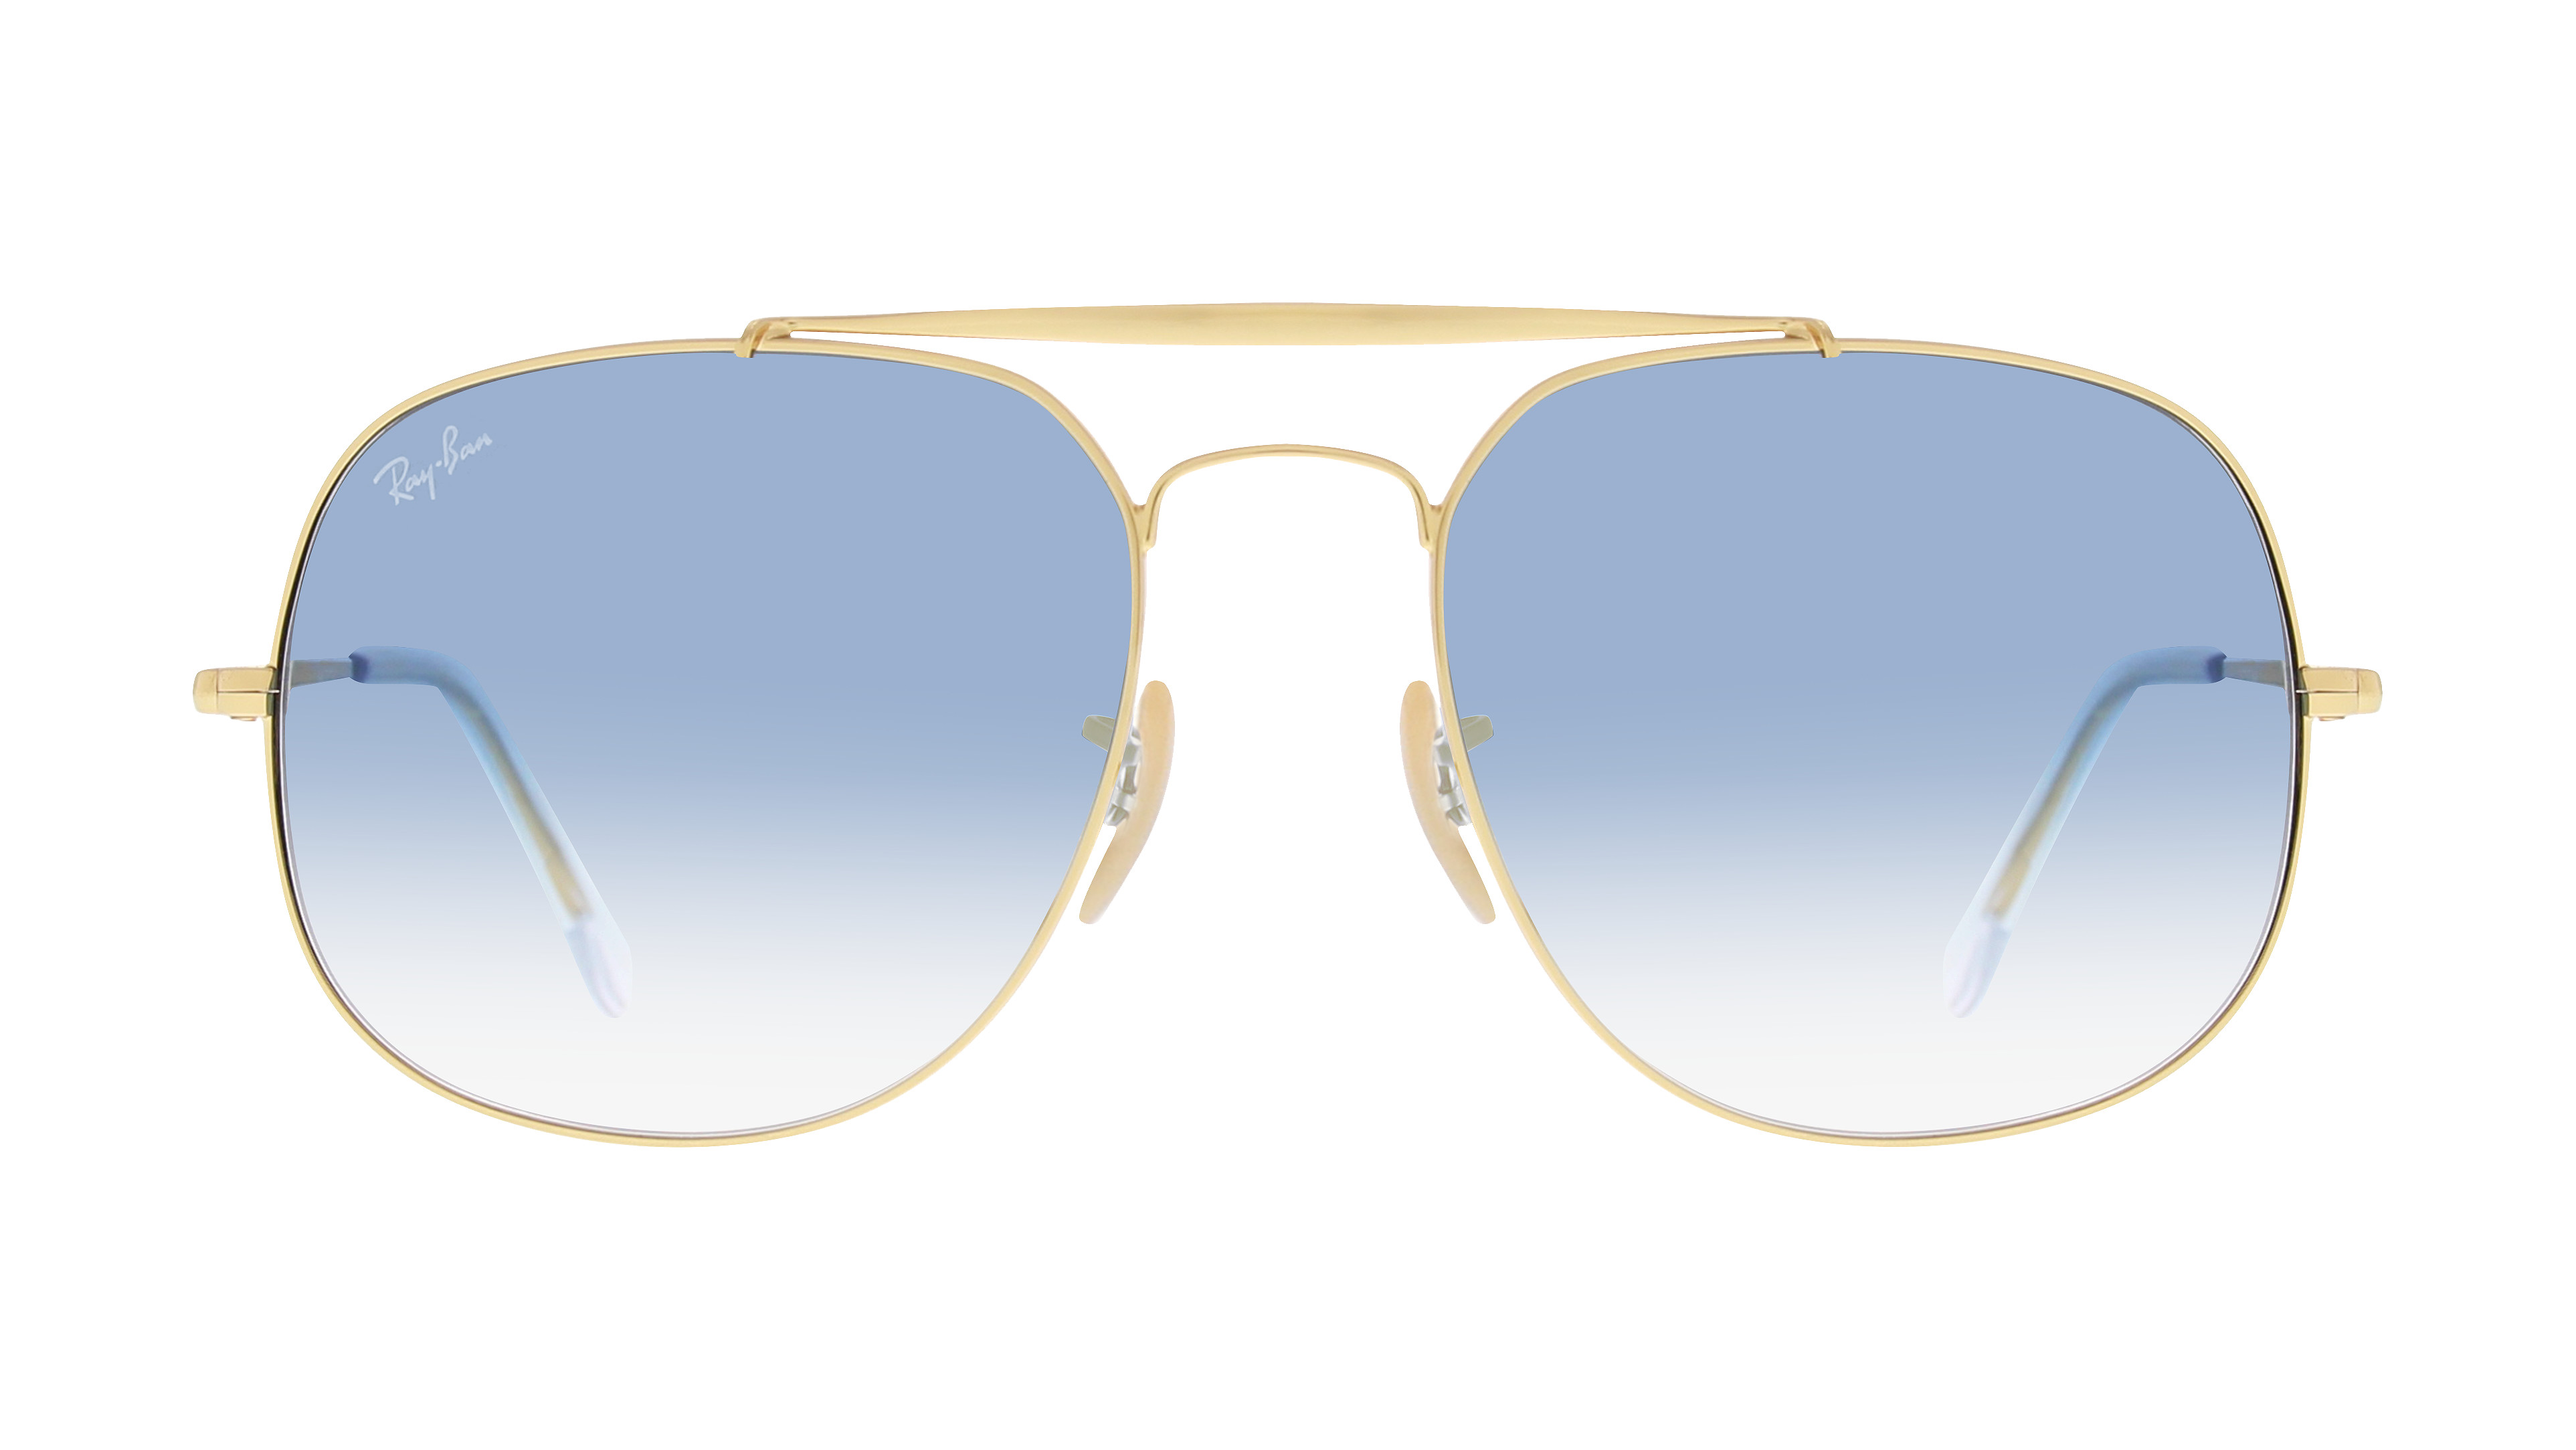 8053672730364_Front_RayBan